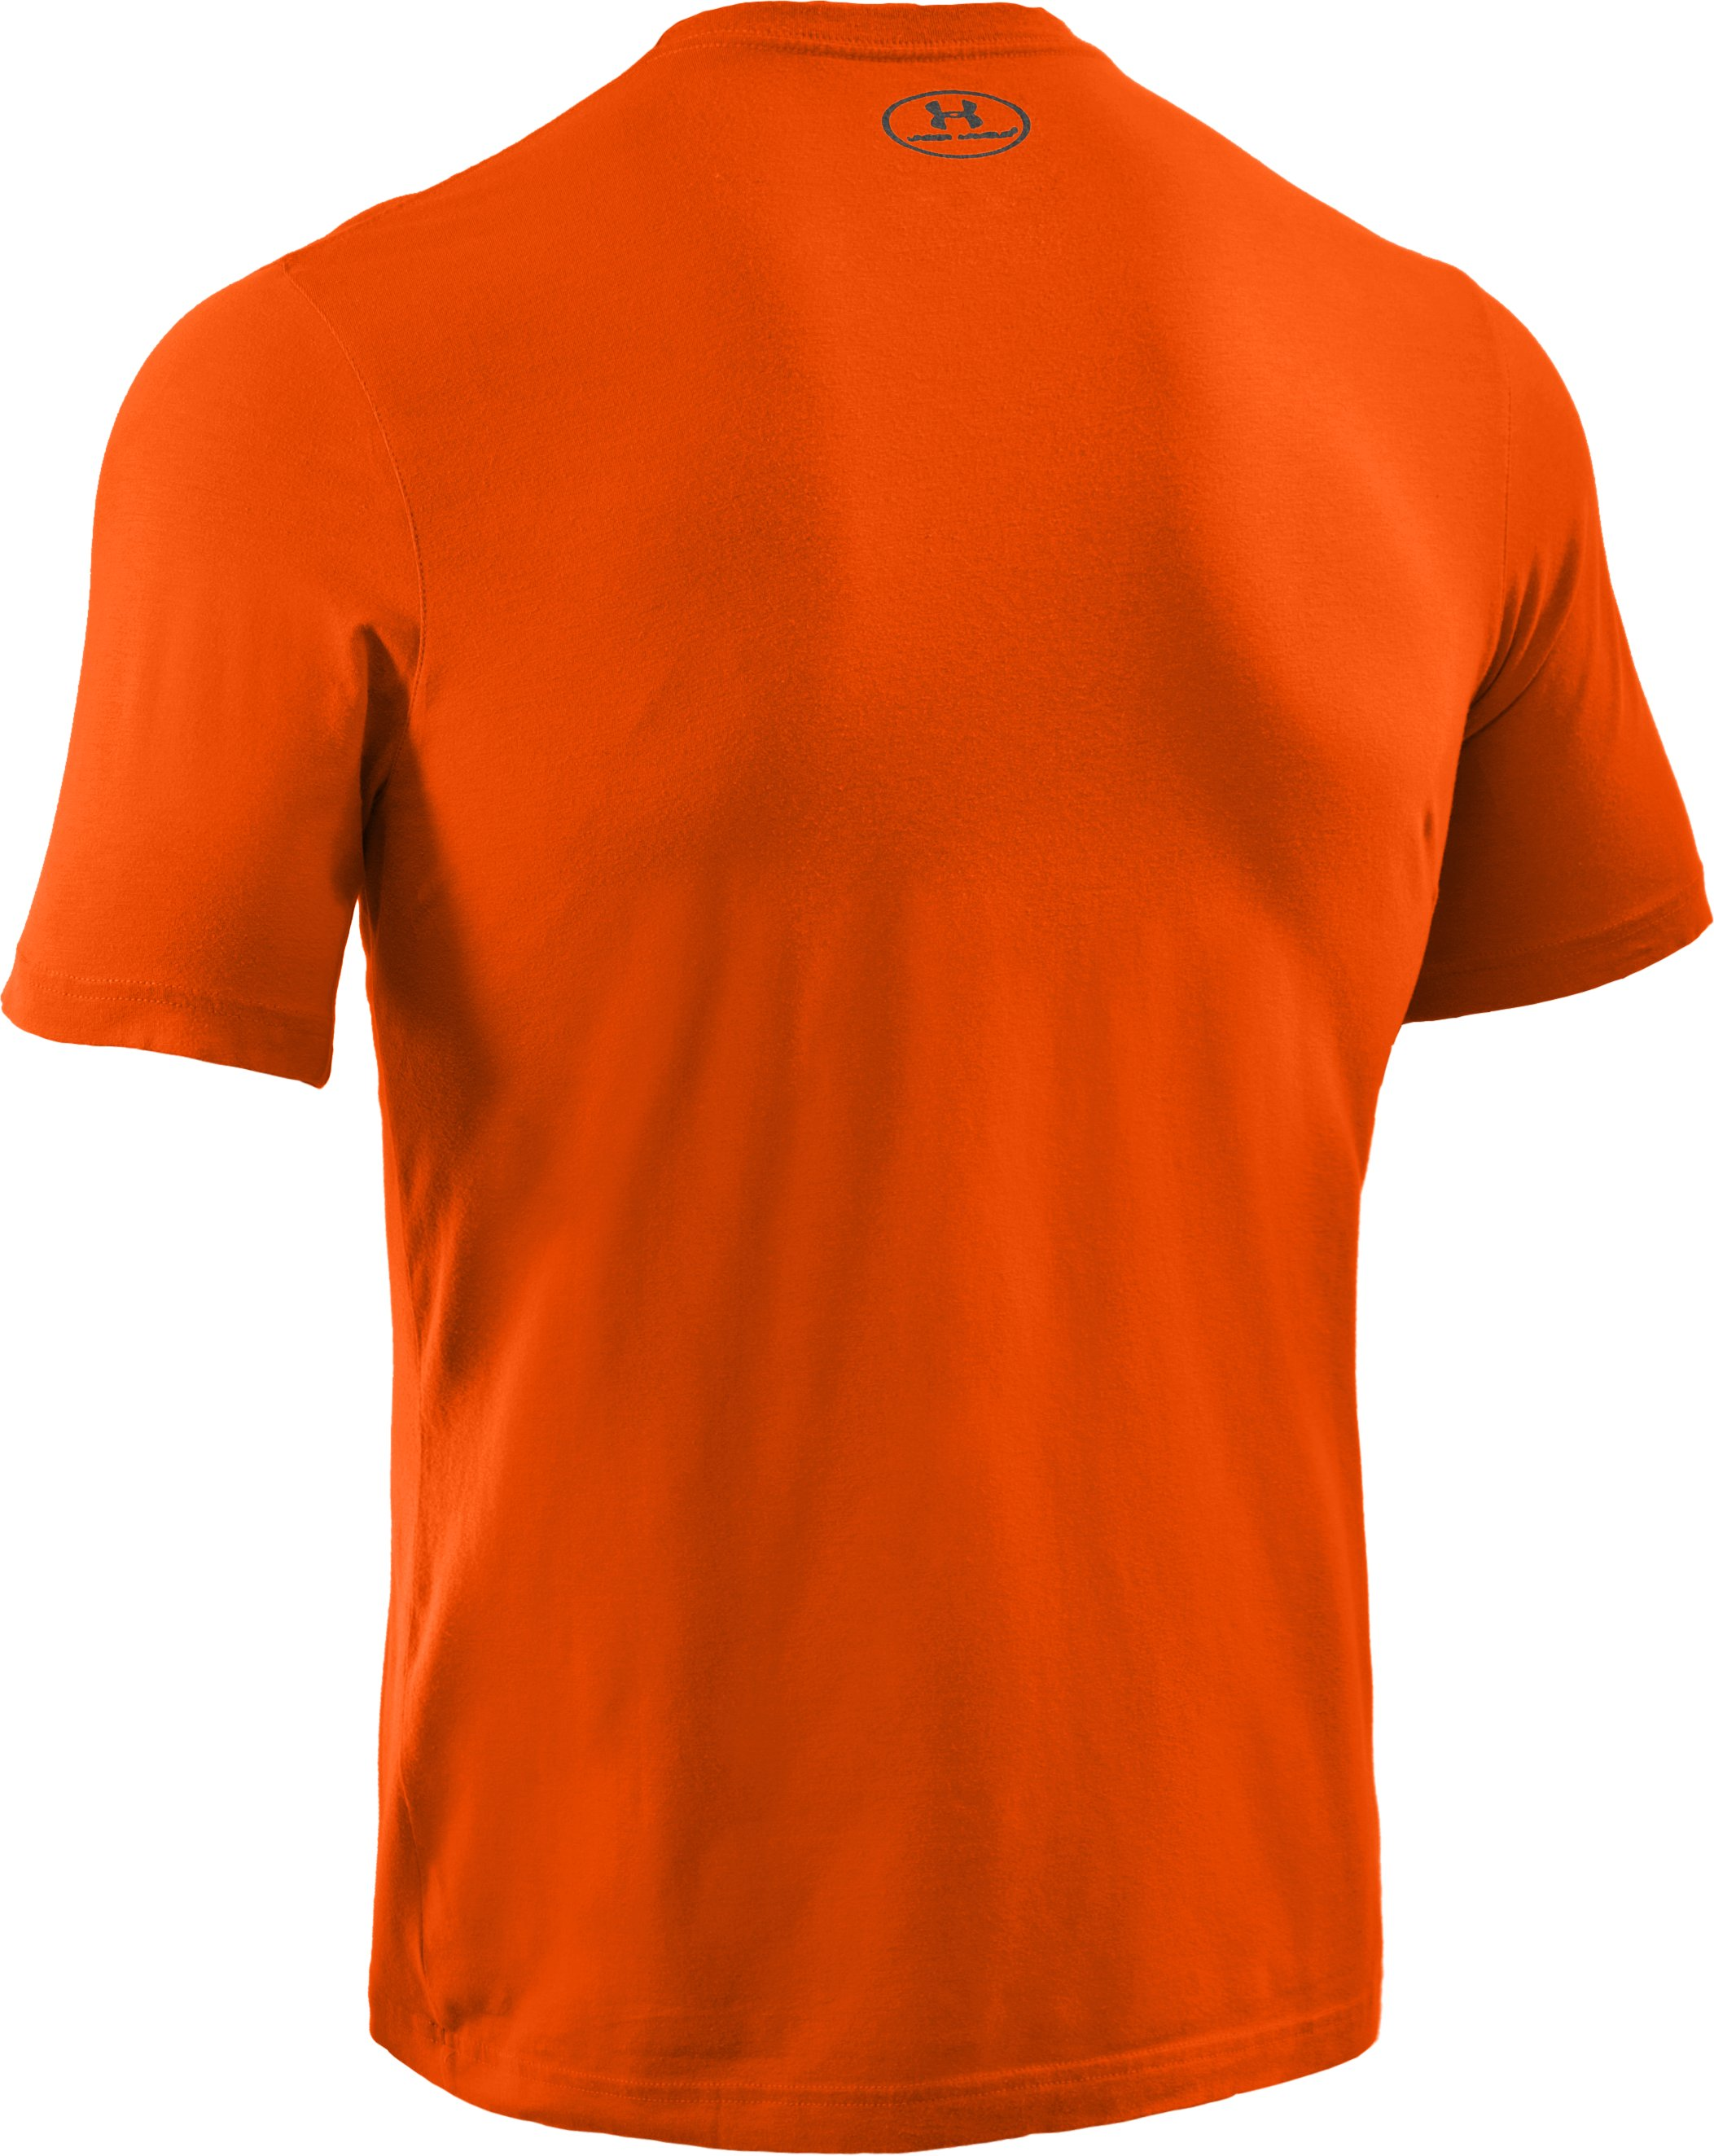 Men's Charged Cotton® T-Shirt, OUTRAGEOUS ORANGE